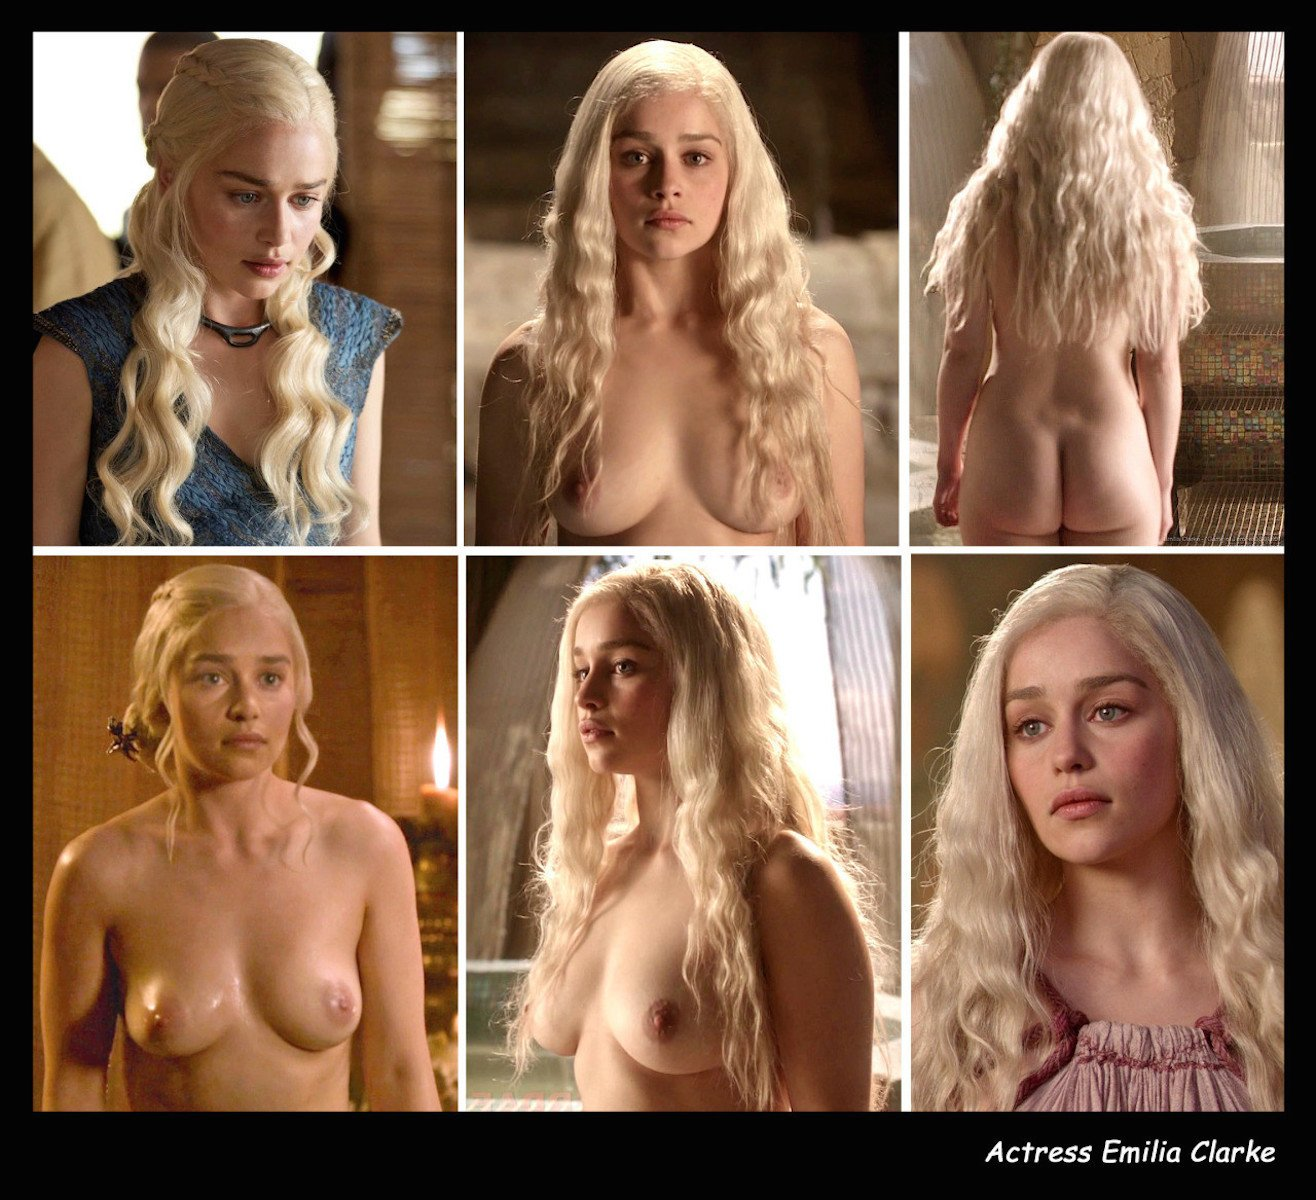 Emilia clarke on terrifying nude scenes, pressure to please game of thrones fans